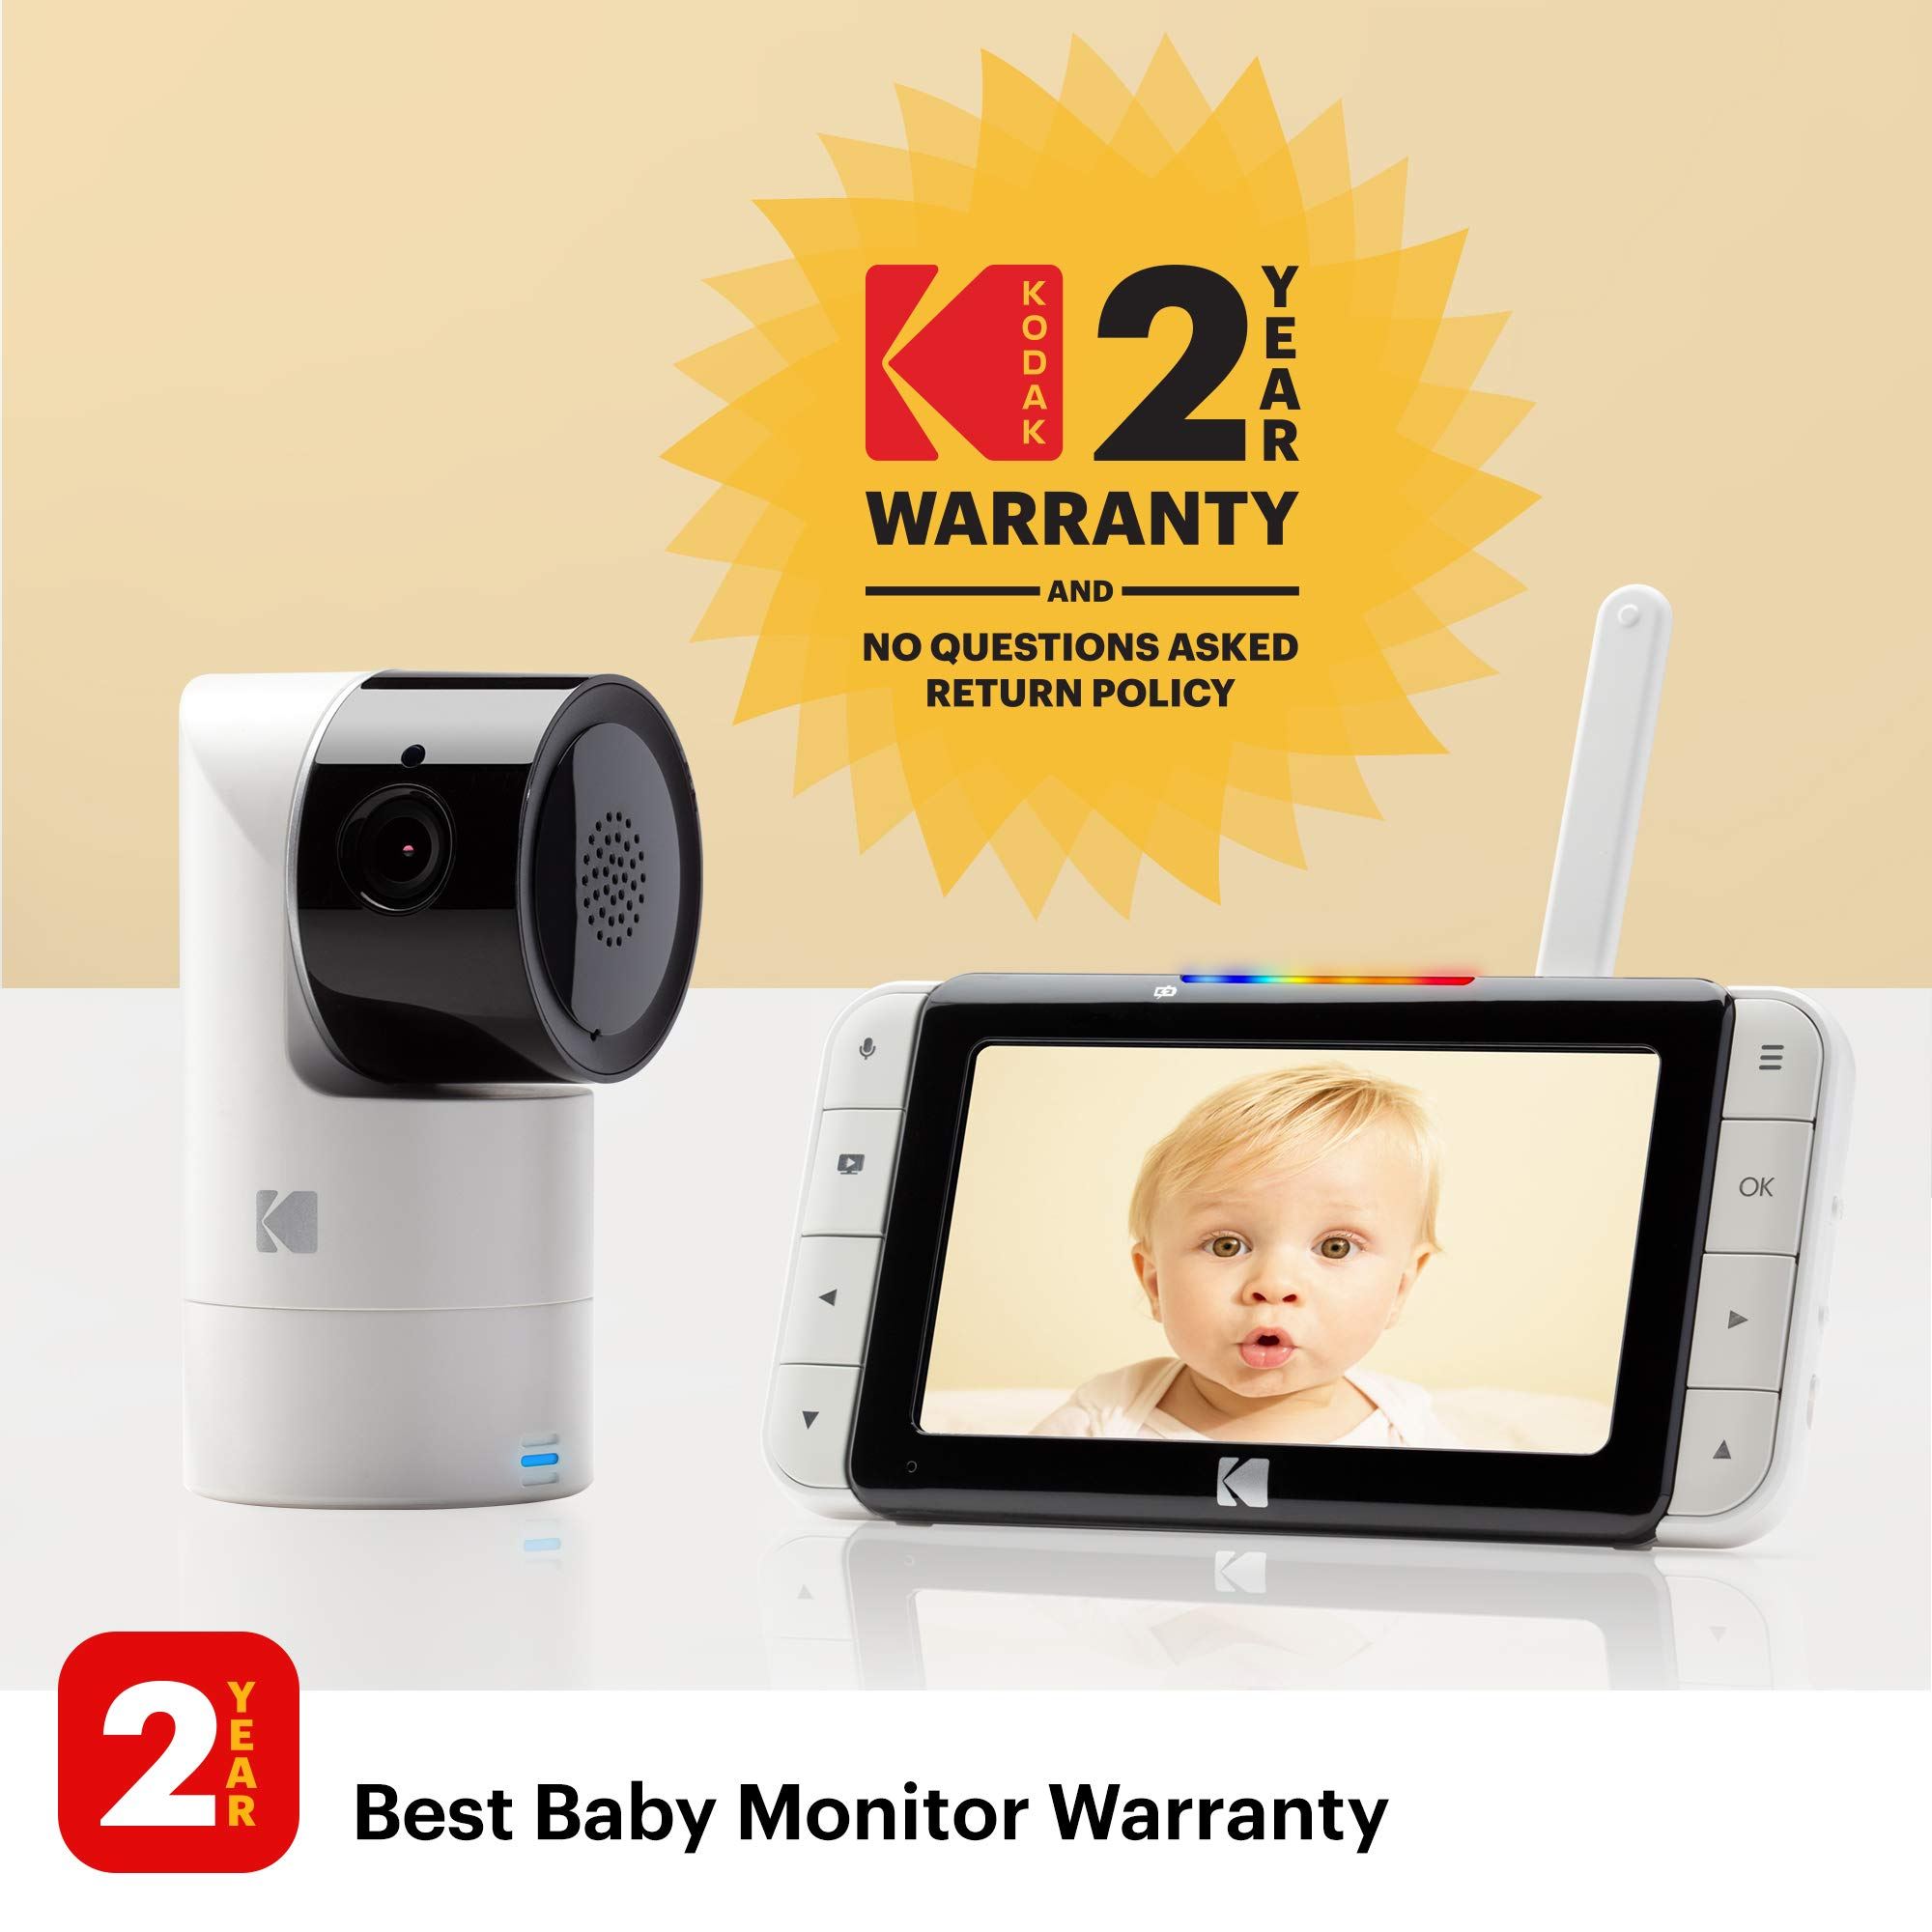 KODAK Cherish C525 Video Baby Monitor with Mobile App - 5'' HD Screen - Hi-res Baby Camera with Remote Tilt, Pan and Zoom, Two-Way Audio, Night-Vision, Long Range - WiFi Indoor Camera by Kodak (Image #3)